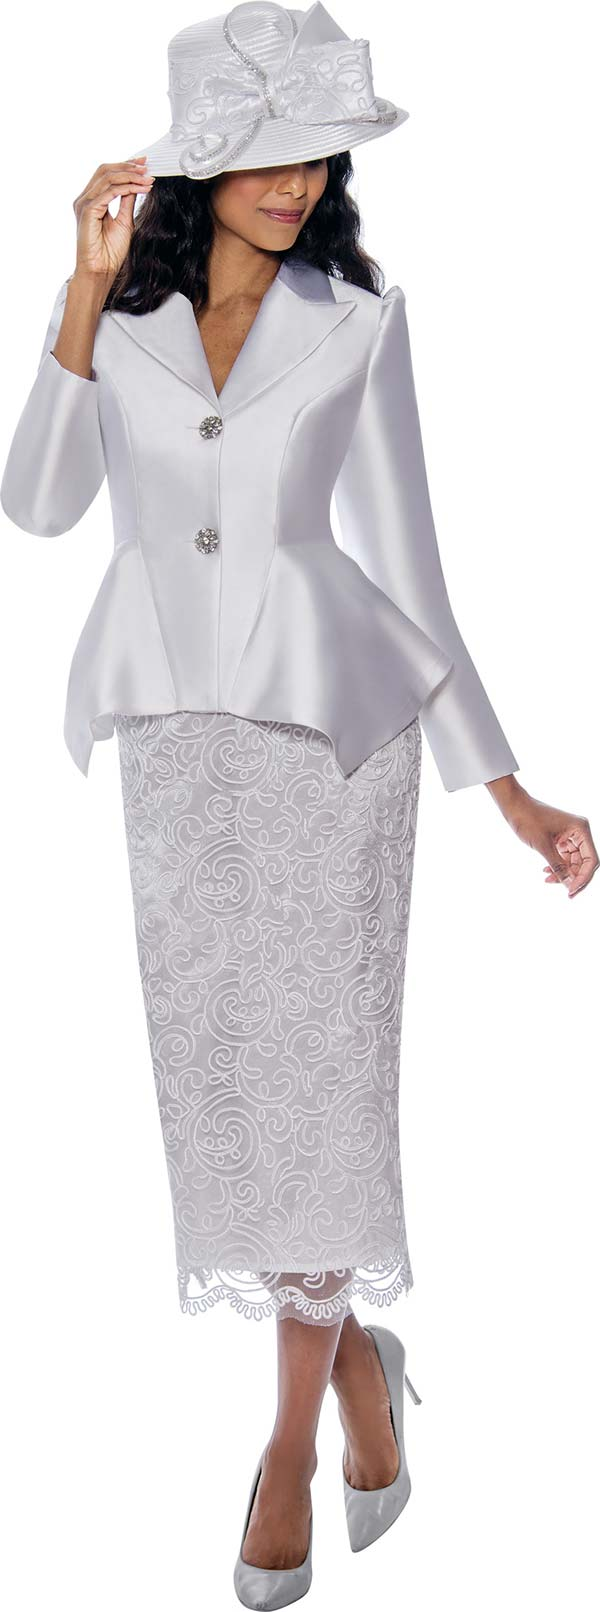 GMI G8092-White - Church Suit With Lace Skirt And Sharkbite Style Peak Lapel Jacket